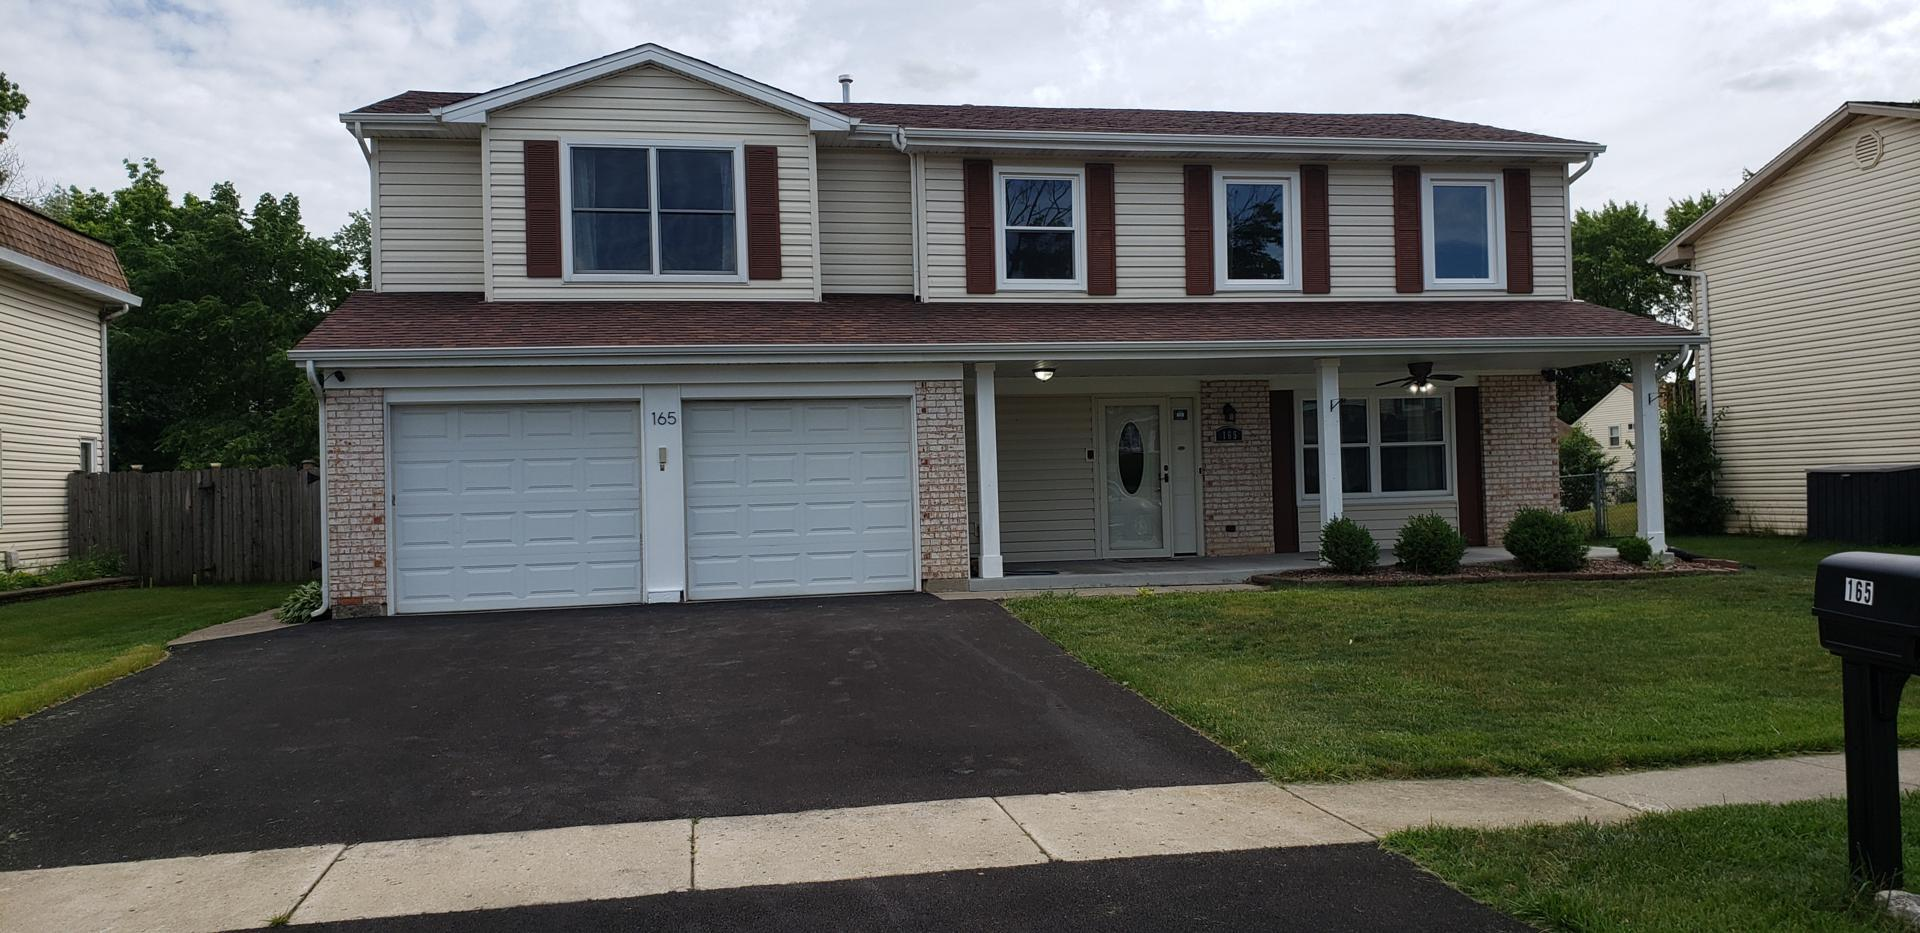 165 Wrightwood Avenue, Glendale Heights, IL 60139 - #: 11138086